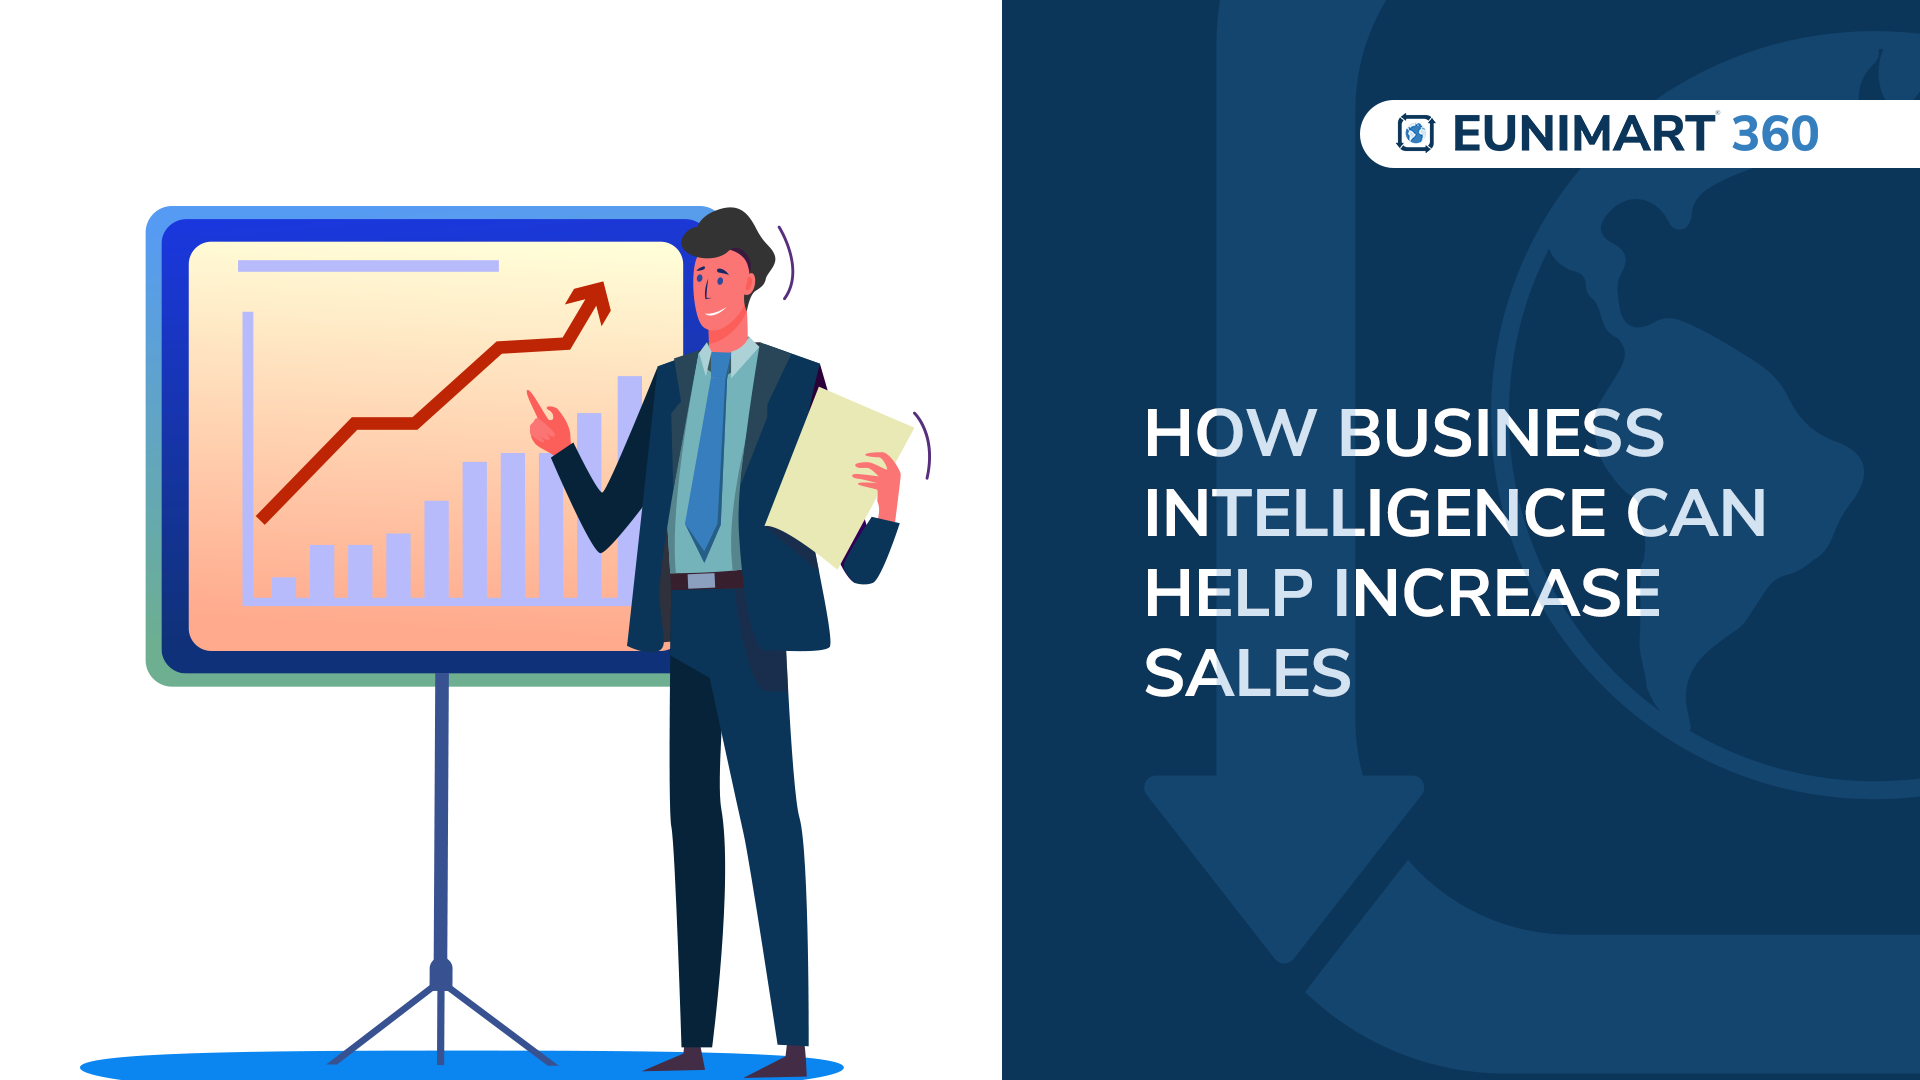 How Business Intelligence can help increase sales